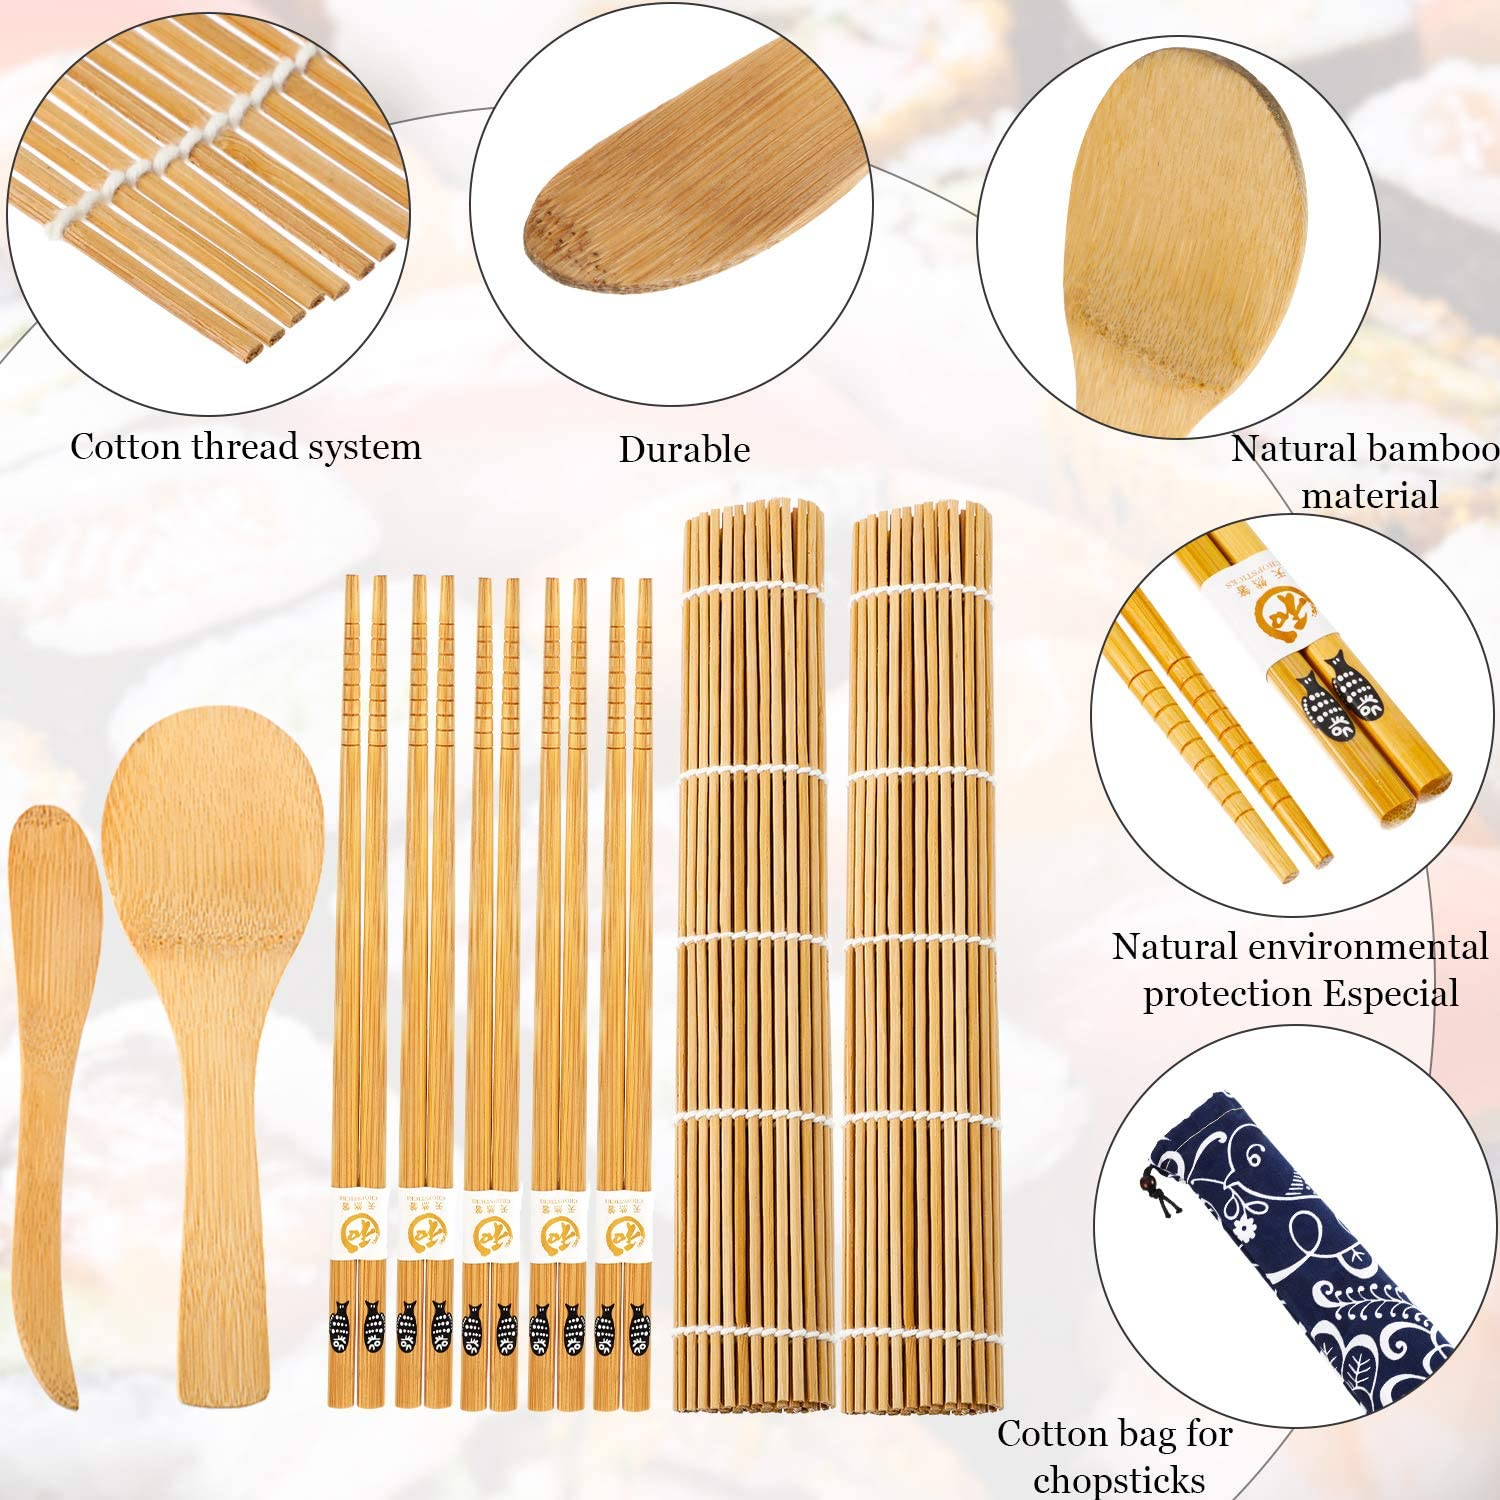 Sushi Making Kit for Beginners Sushi Bazooka Maker DIY Sushi Roller Machine Include Sushi Rolling Pads Mats Bamboo Chopsticks Rice Paddle Rice Spreader and Cotton Bag Set of 11